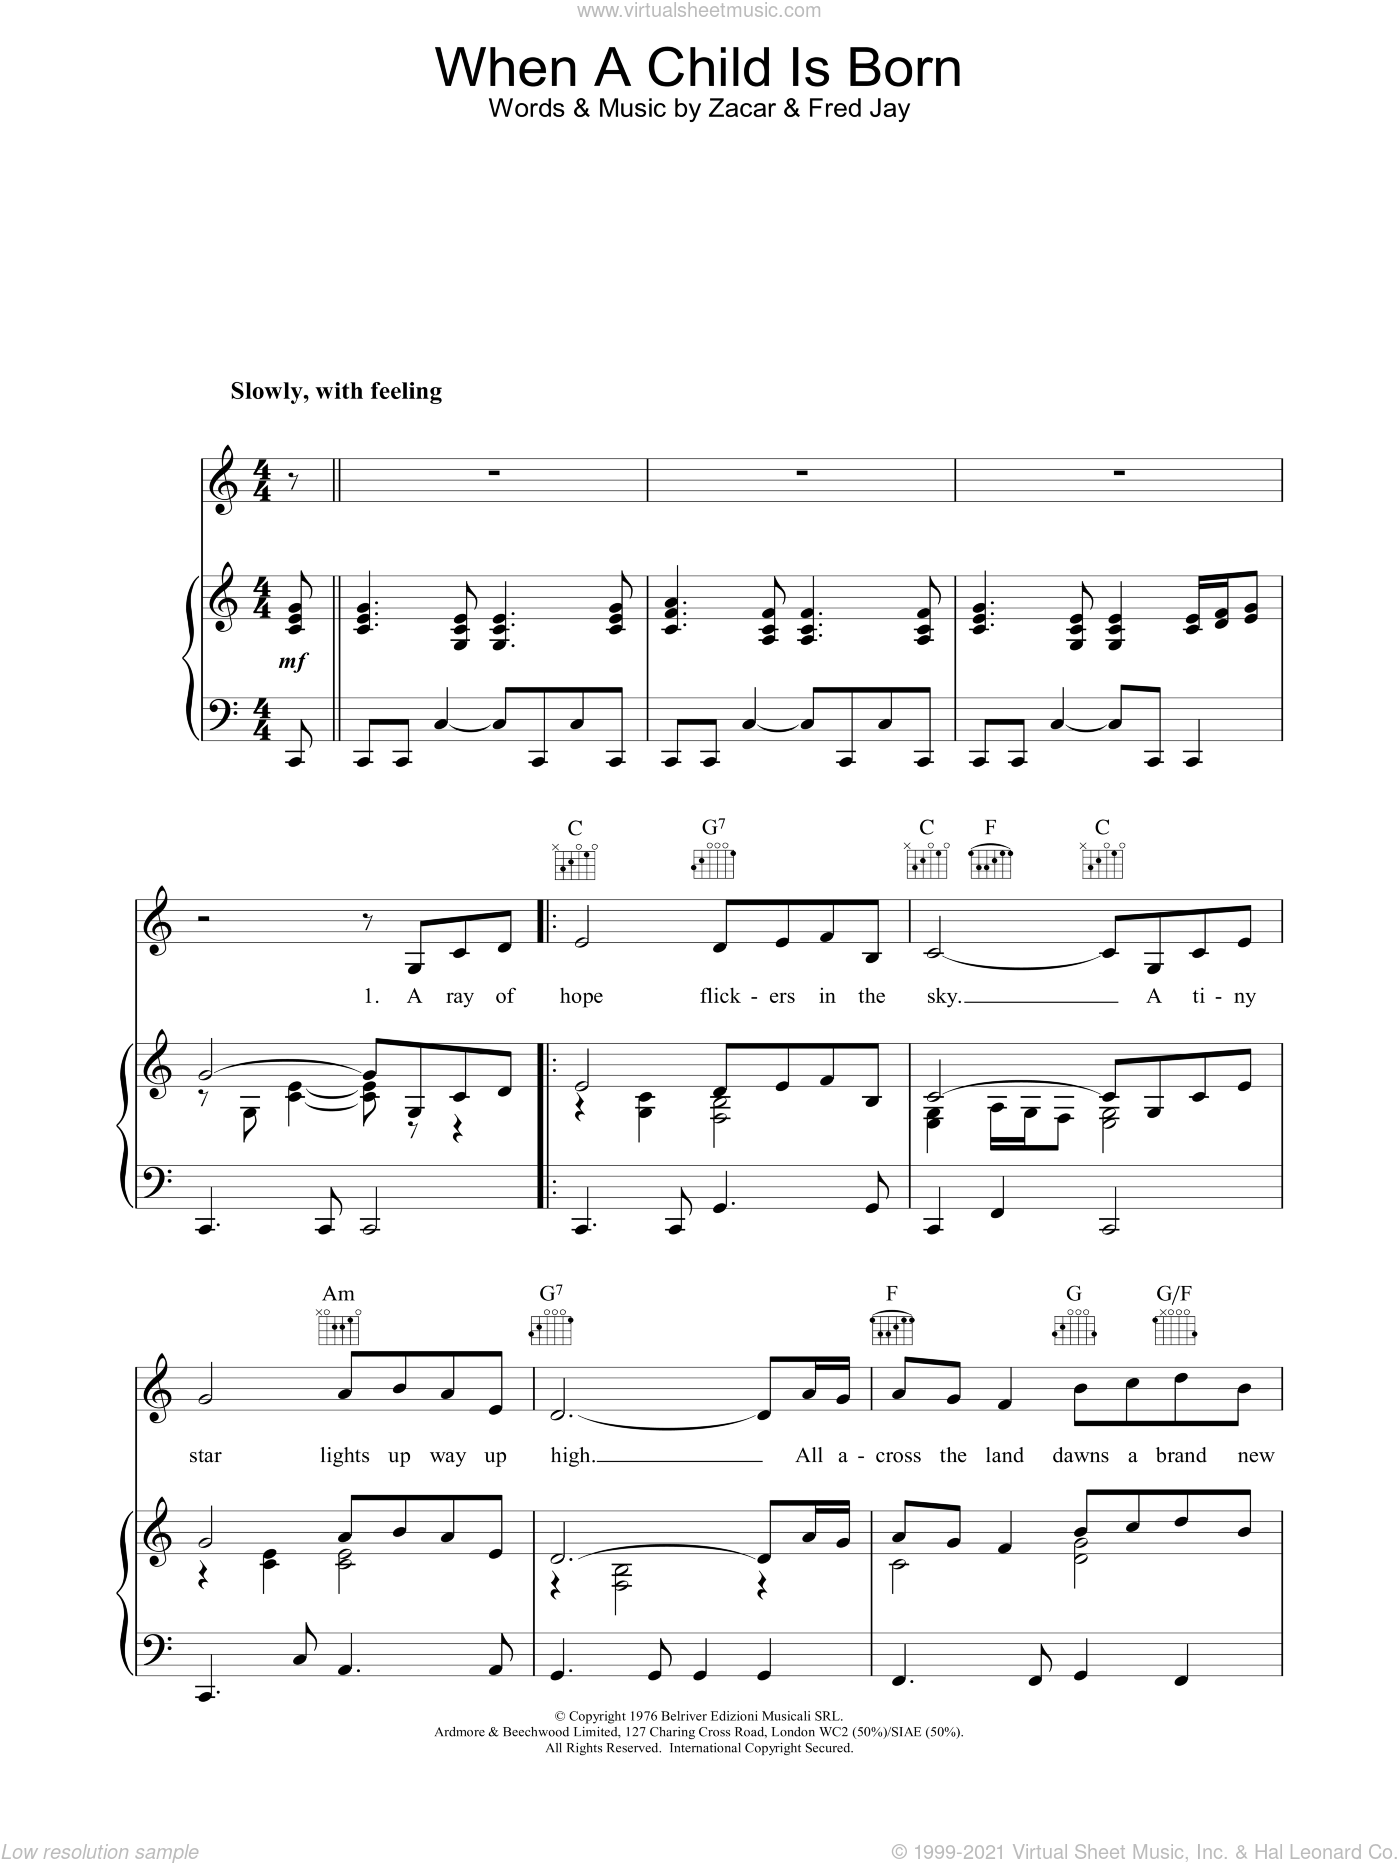 When A Child Is Born sheet music for voice, piano or guitar by Zacar